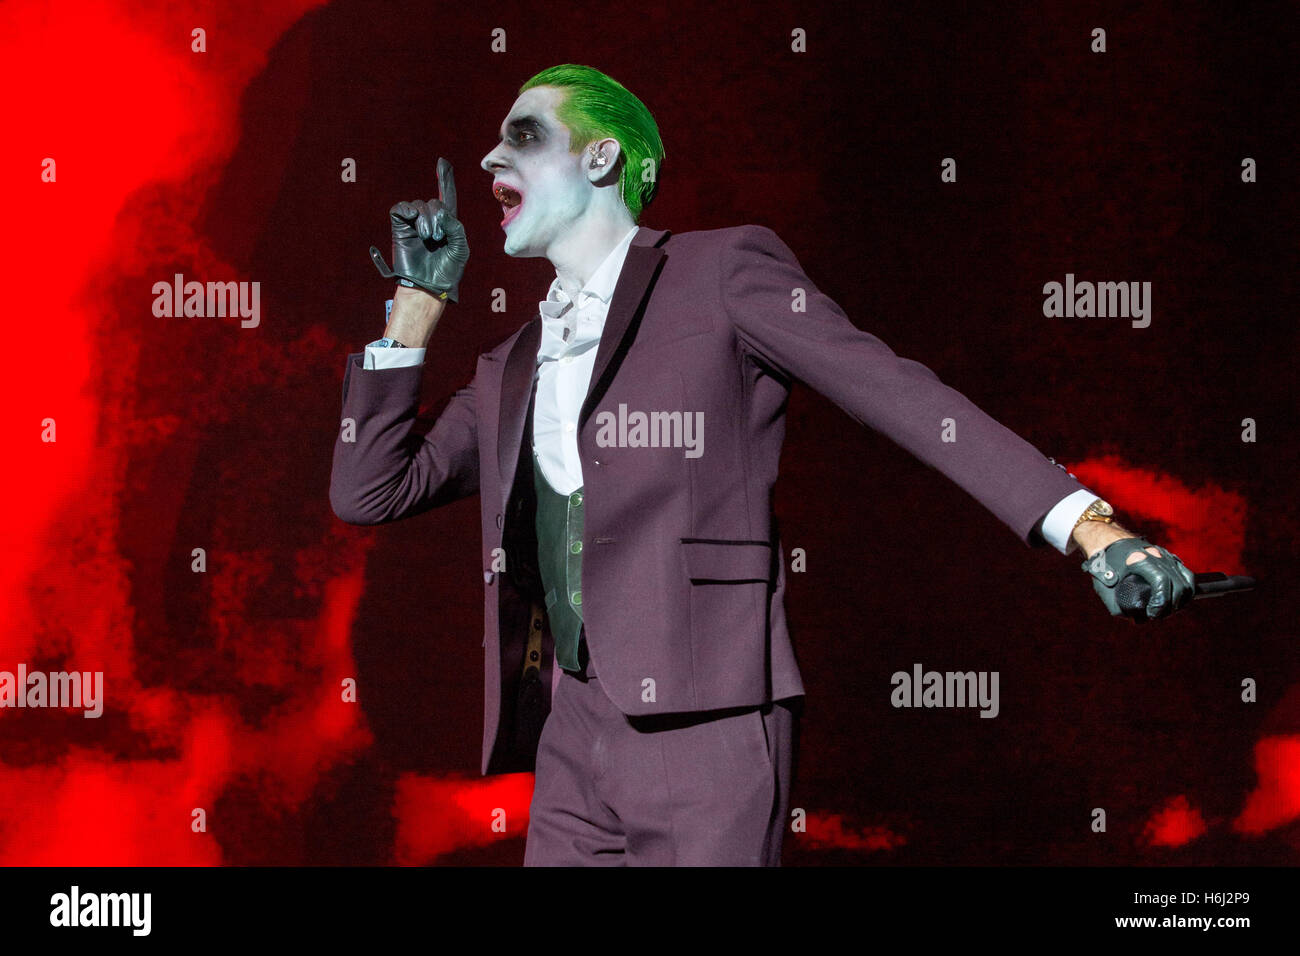 Rapper G EAZY GERALD GILLUM Performs Live In Halloween Makeup And Green Hair At The Voodoo Music Arts Experience New